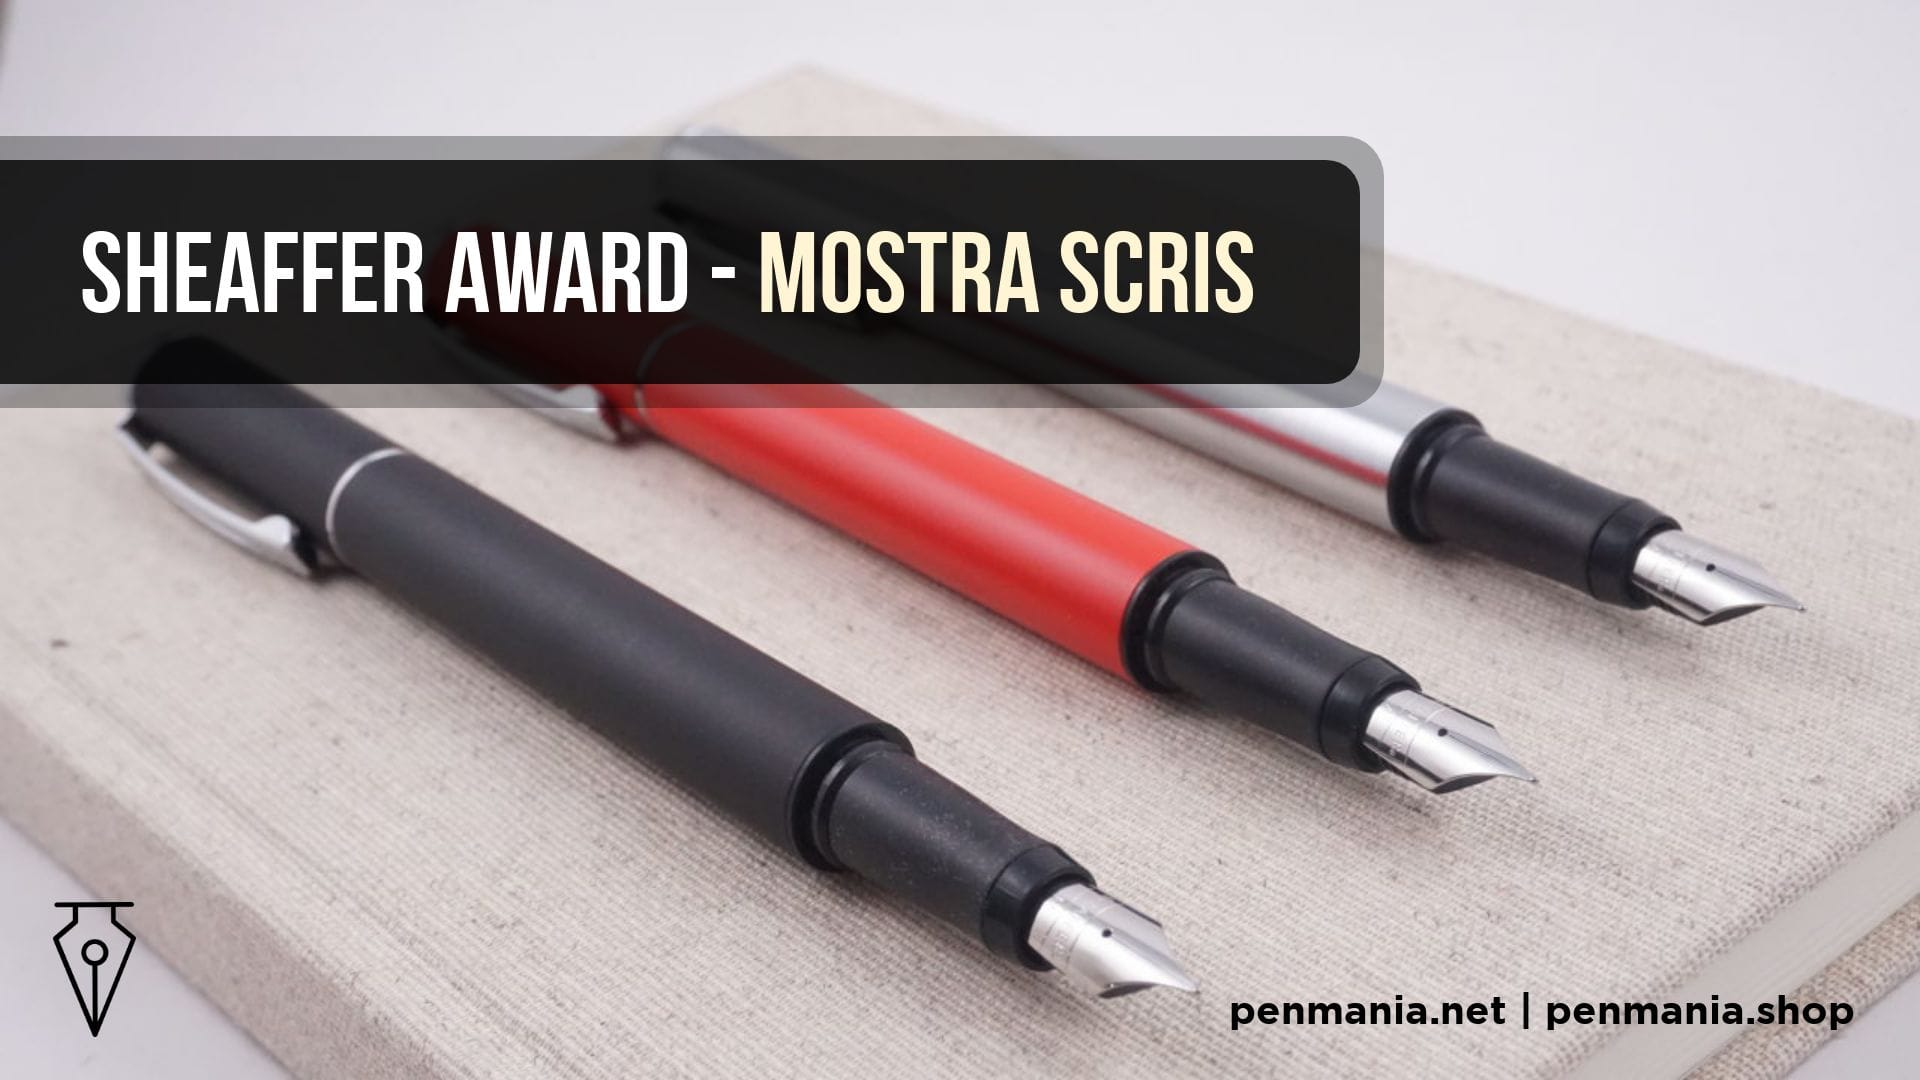 Coperta Video Stilou Sheaffer Award Mostra Scris Video Penmania Shop